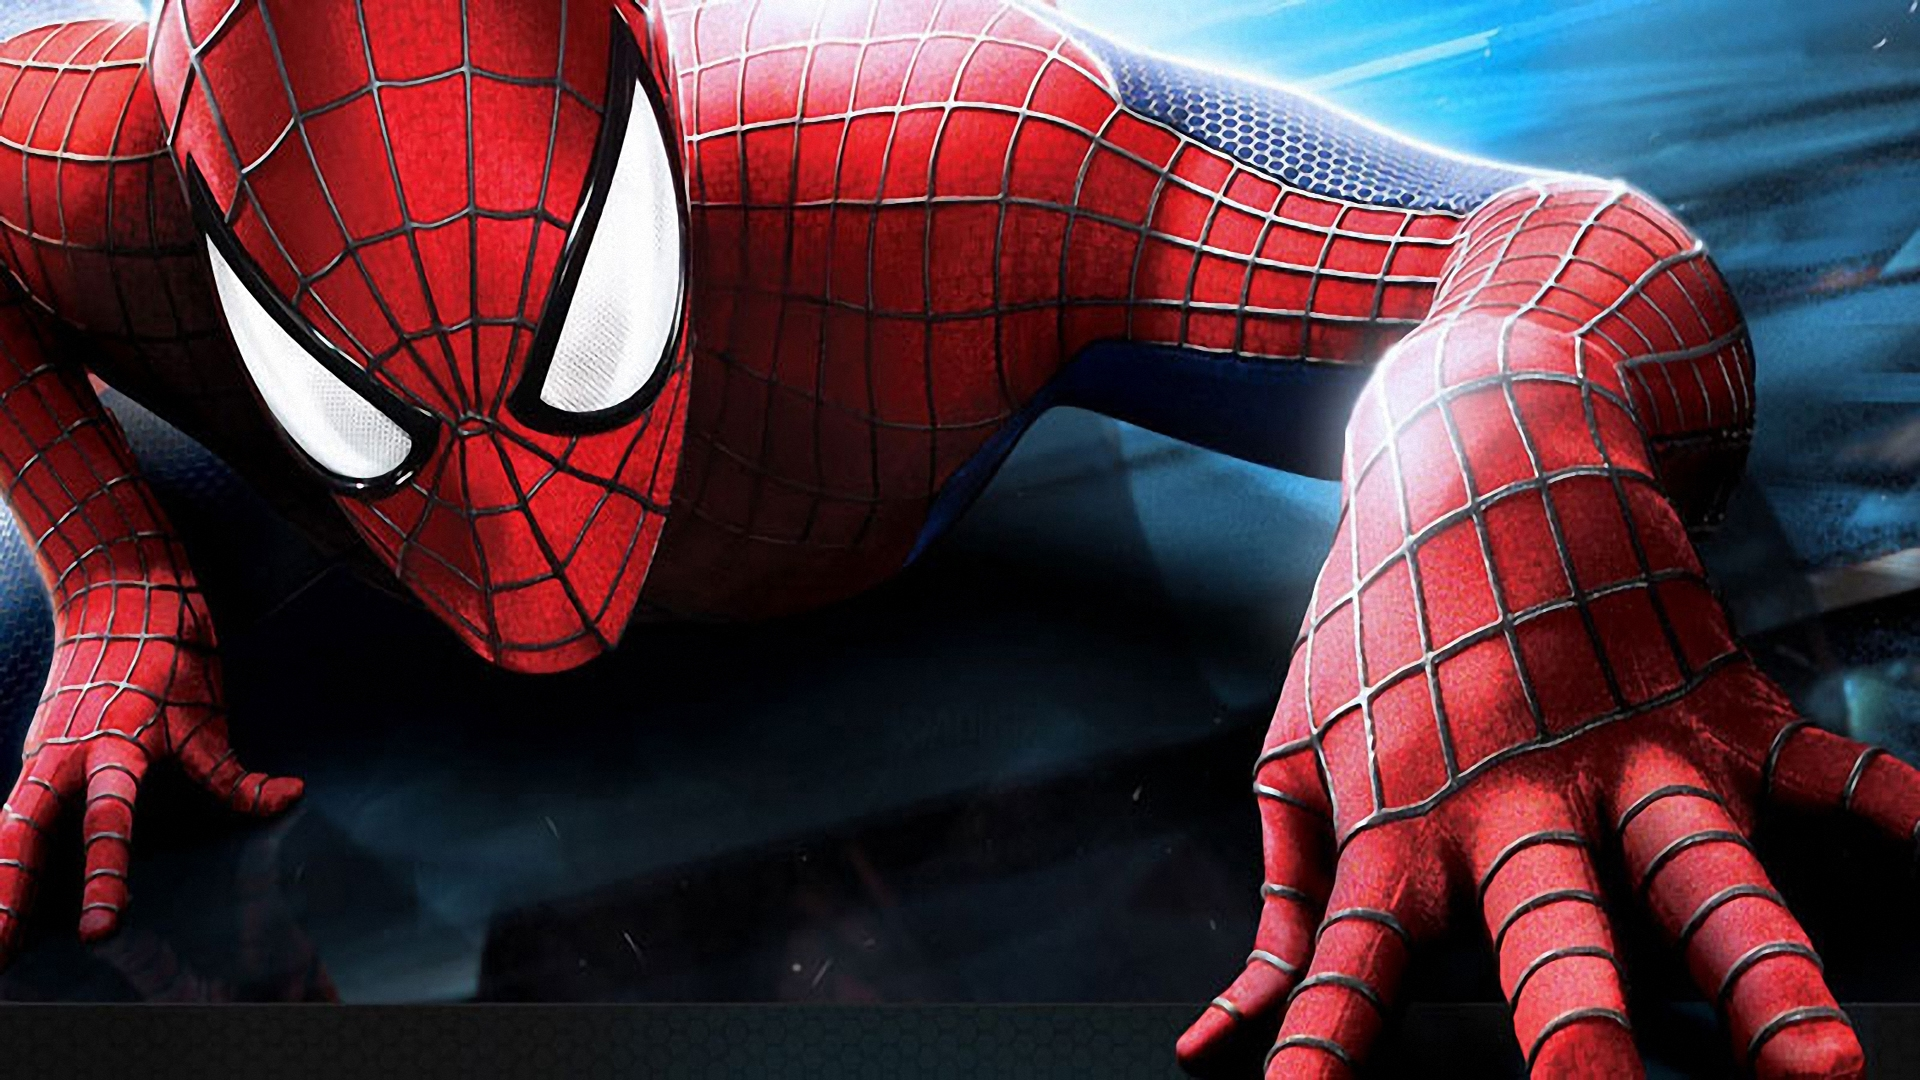 ultimate spider man hd wallpaper wallpapersafari. Black Bedroom Furniture Sets. Home Design Ideas